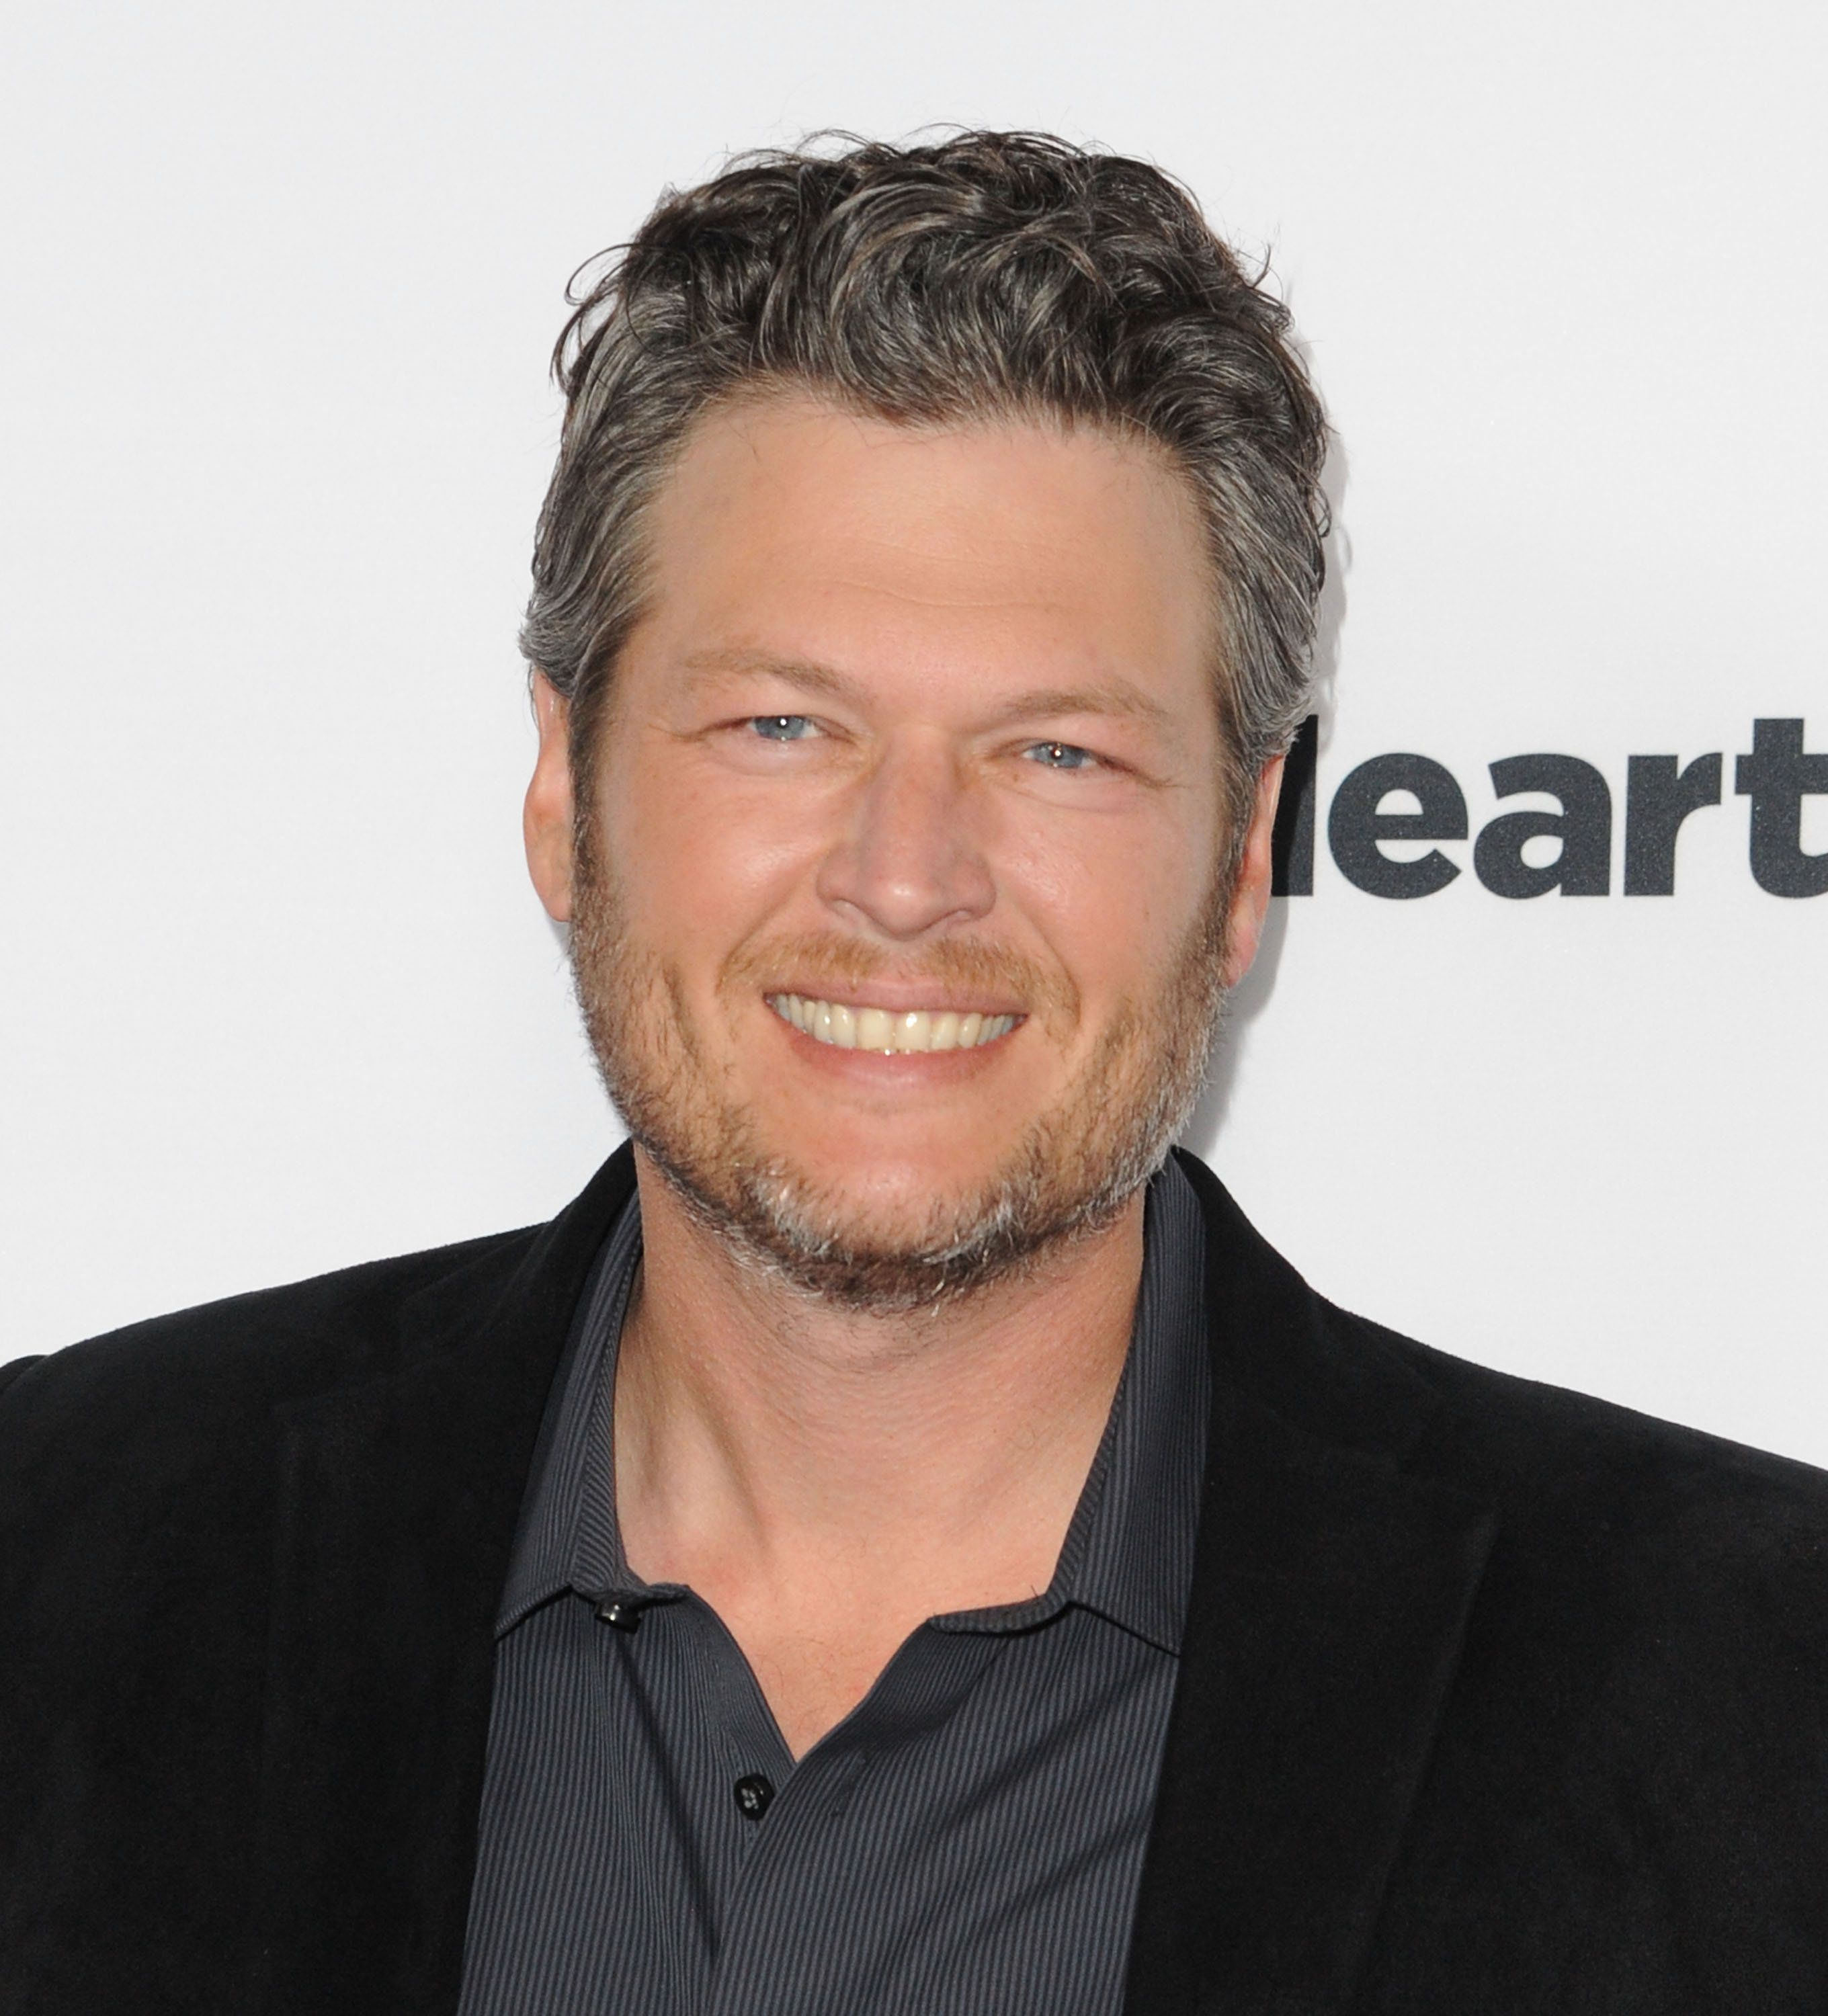 WEST HOLLYWOOD, CA - APRIL 23:  Singer Blake Shelton arrives at NBC's 'The Voice' Season 8 red carpet event at Pacific Design Center on April 23, 2015 in West Hollywood, California.  (Photo by Angela Weiss/Getty Images)